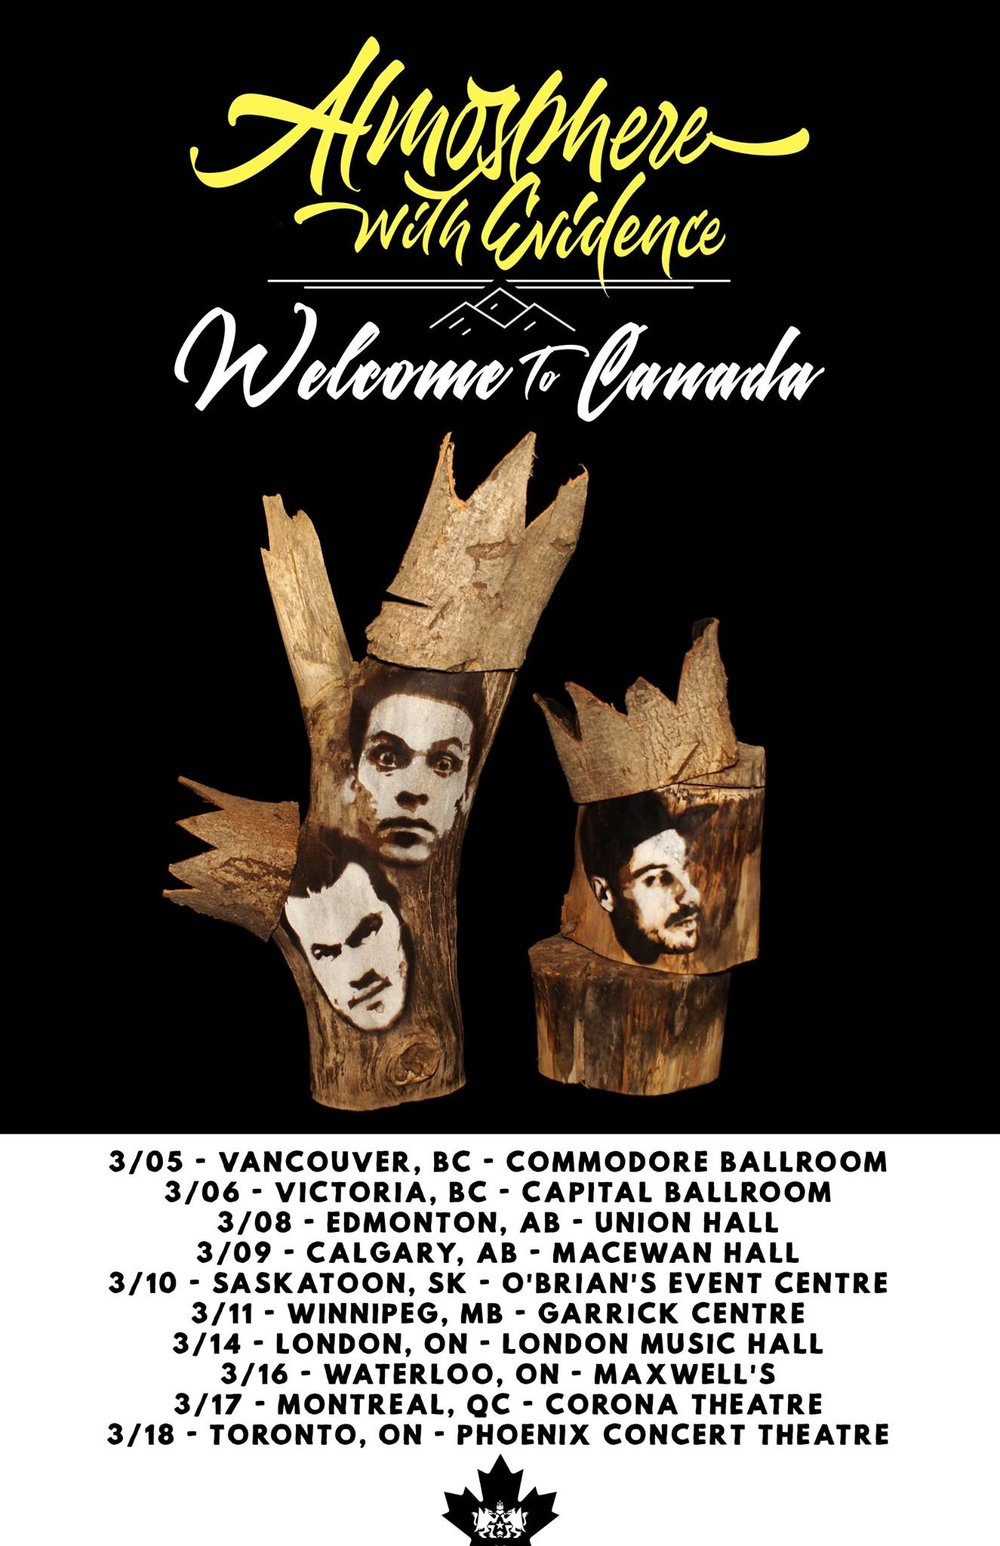 Atmosphere w/ Evidence - Welcome to Canada Tour - I've had the honor to create these sculpture/paintings of Atmosphere and Evidence to help promote their upcoming tour of Canada in March of 2018. I'm grateful to the good people of Atmosphere & Rhymesayers who are, and always have been, an absolute pleasure to work with.These were made with old logs and tree bark I had on my property.  Also, of note, they went out of their way to hire a Canadian artist for their Canadian tour. Little things like that make a huge difference in my opinion.